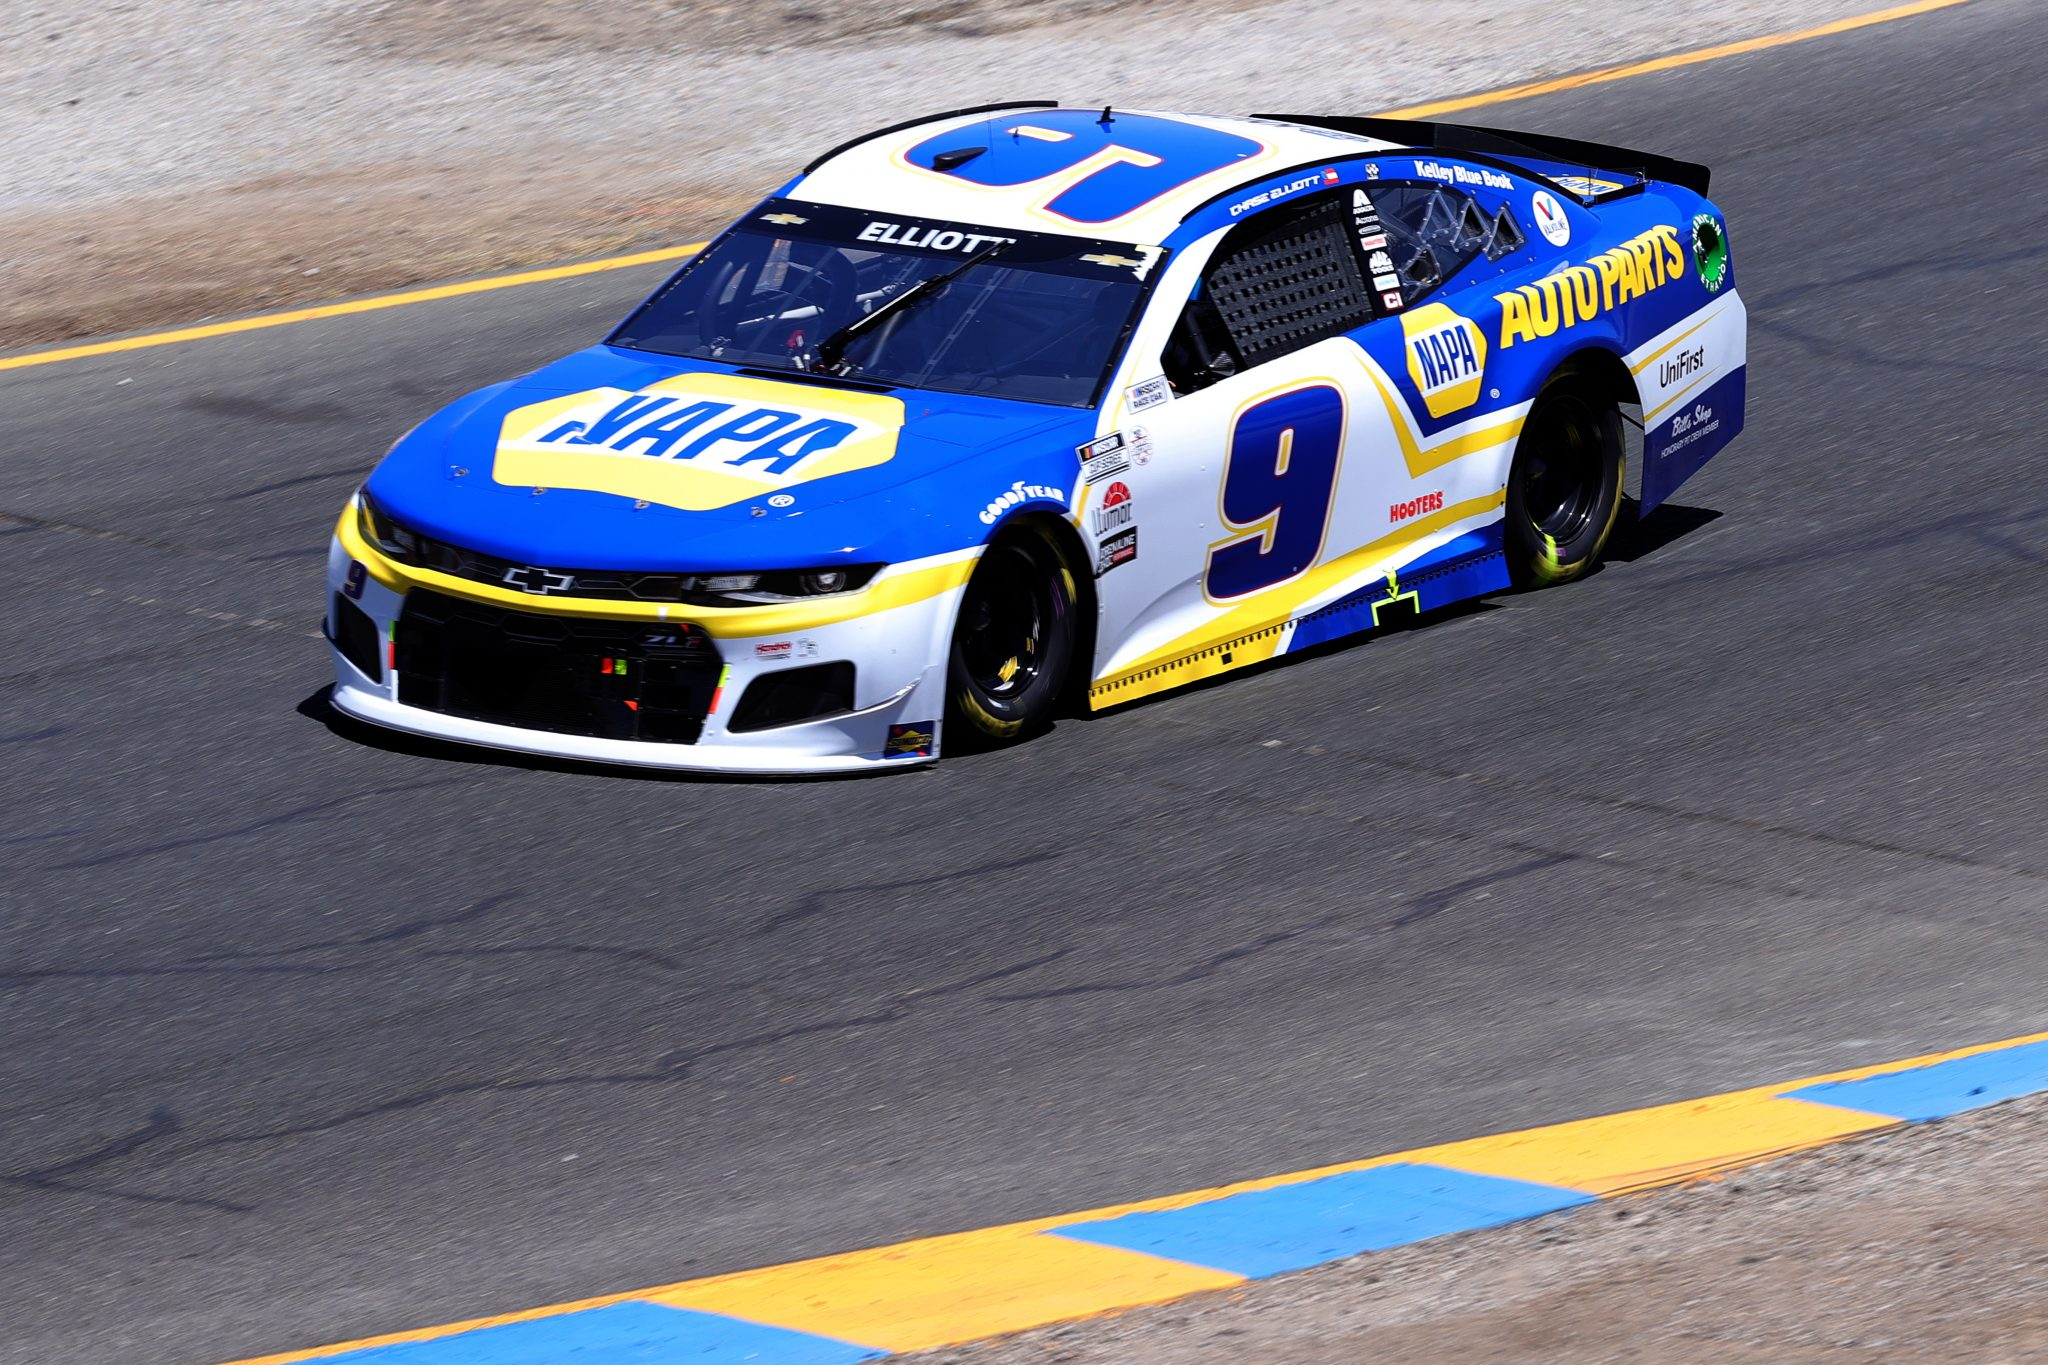 SONOMA, CALIFORNIA - JUNE 06: Chase Elliott, driver of the #9 NAPA Auto Parts Chevrolet, drives during the NASCAR Cup Series Toyota/Save Mart 350 at Sonoma Raceway on June 06, 2021 in Sonoma, California. (Photo by Carmen Mandato/Getty Images) | Getty Images